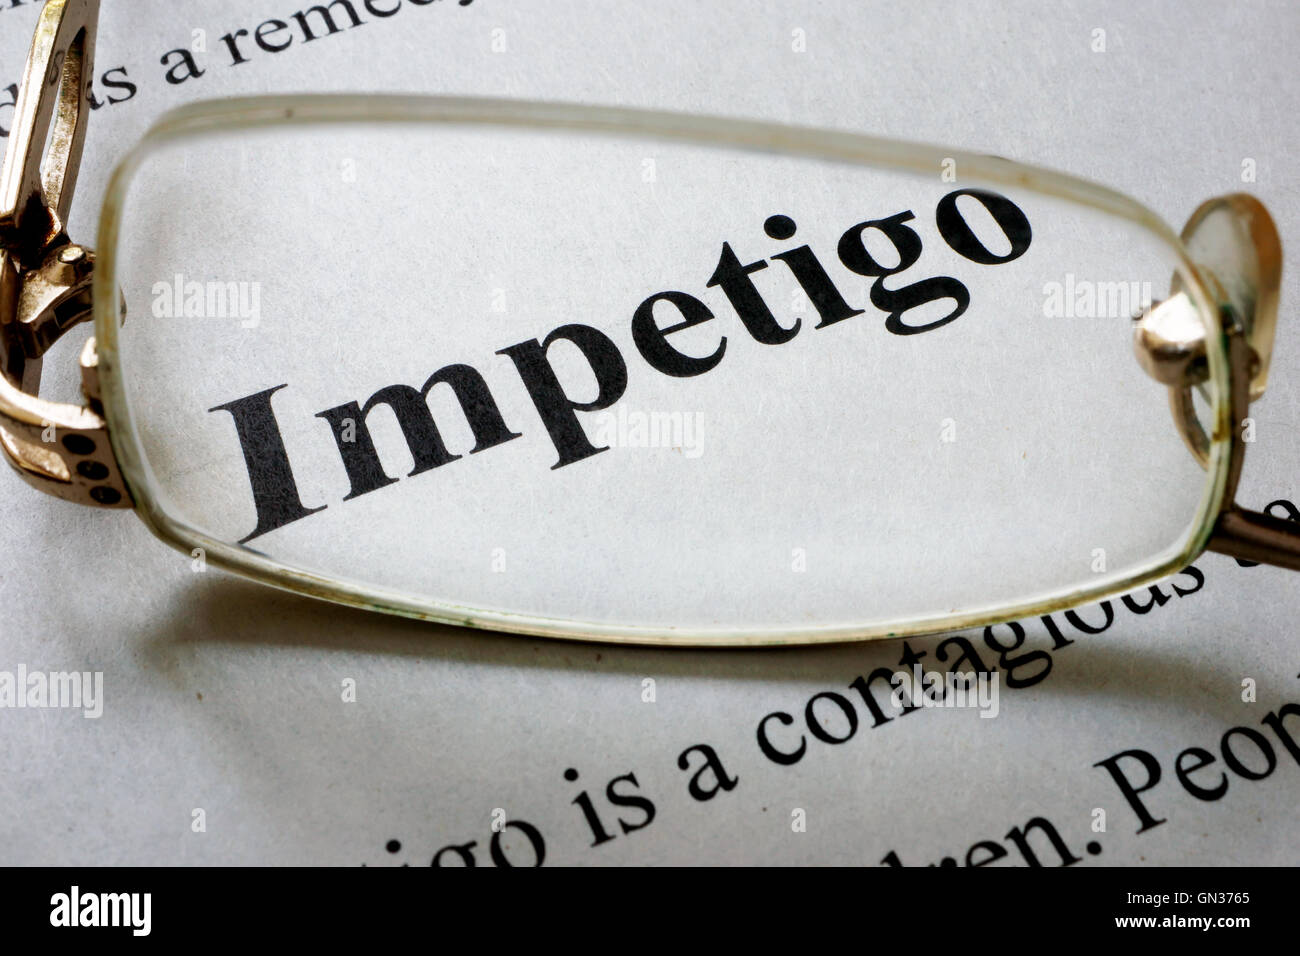 Paper with word Impetigo and glasses. Medical concept. - Stock Image